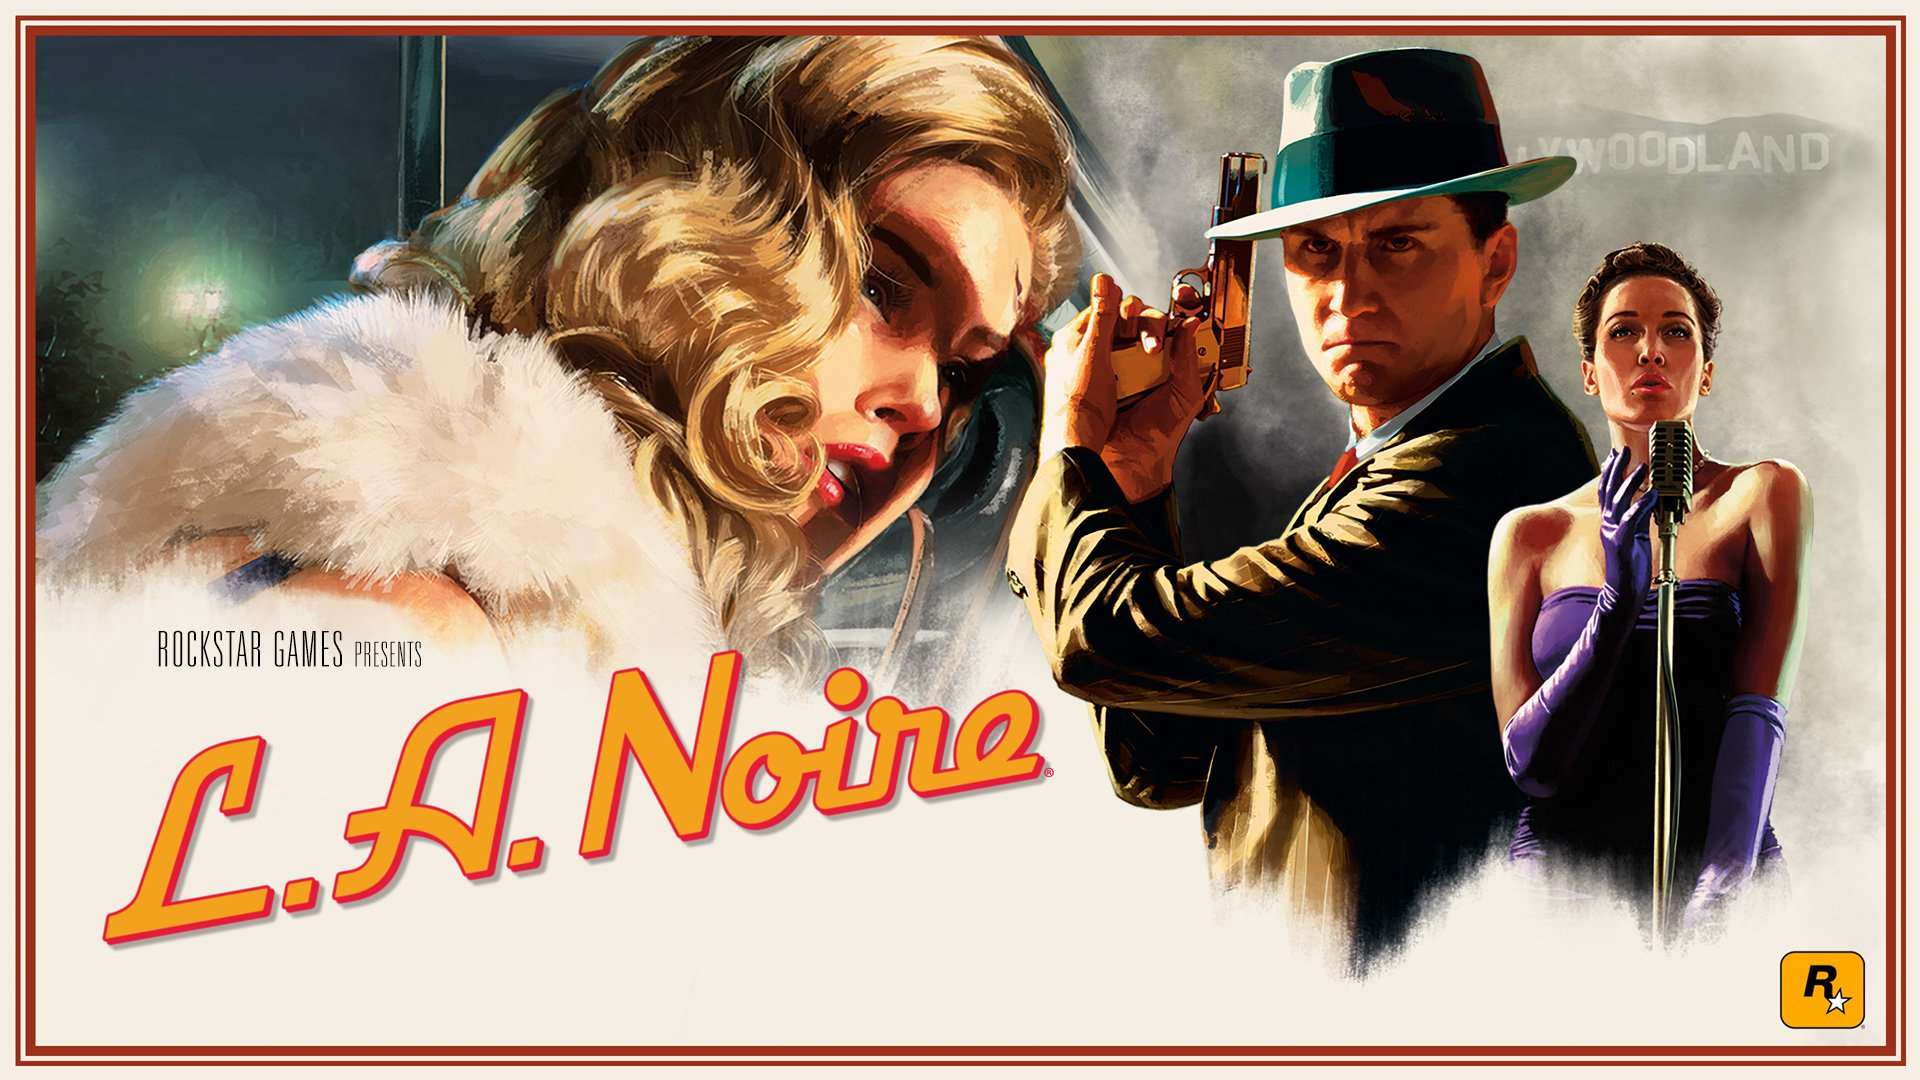 L.A. Noire is now available for the Nintendo Switch, PlayStation 4 and Xbox One.  https://t.co/ZontfKrHdV https://t.co/j73VtrszVU